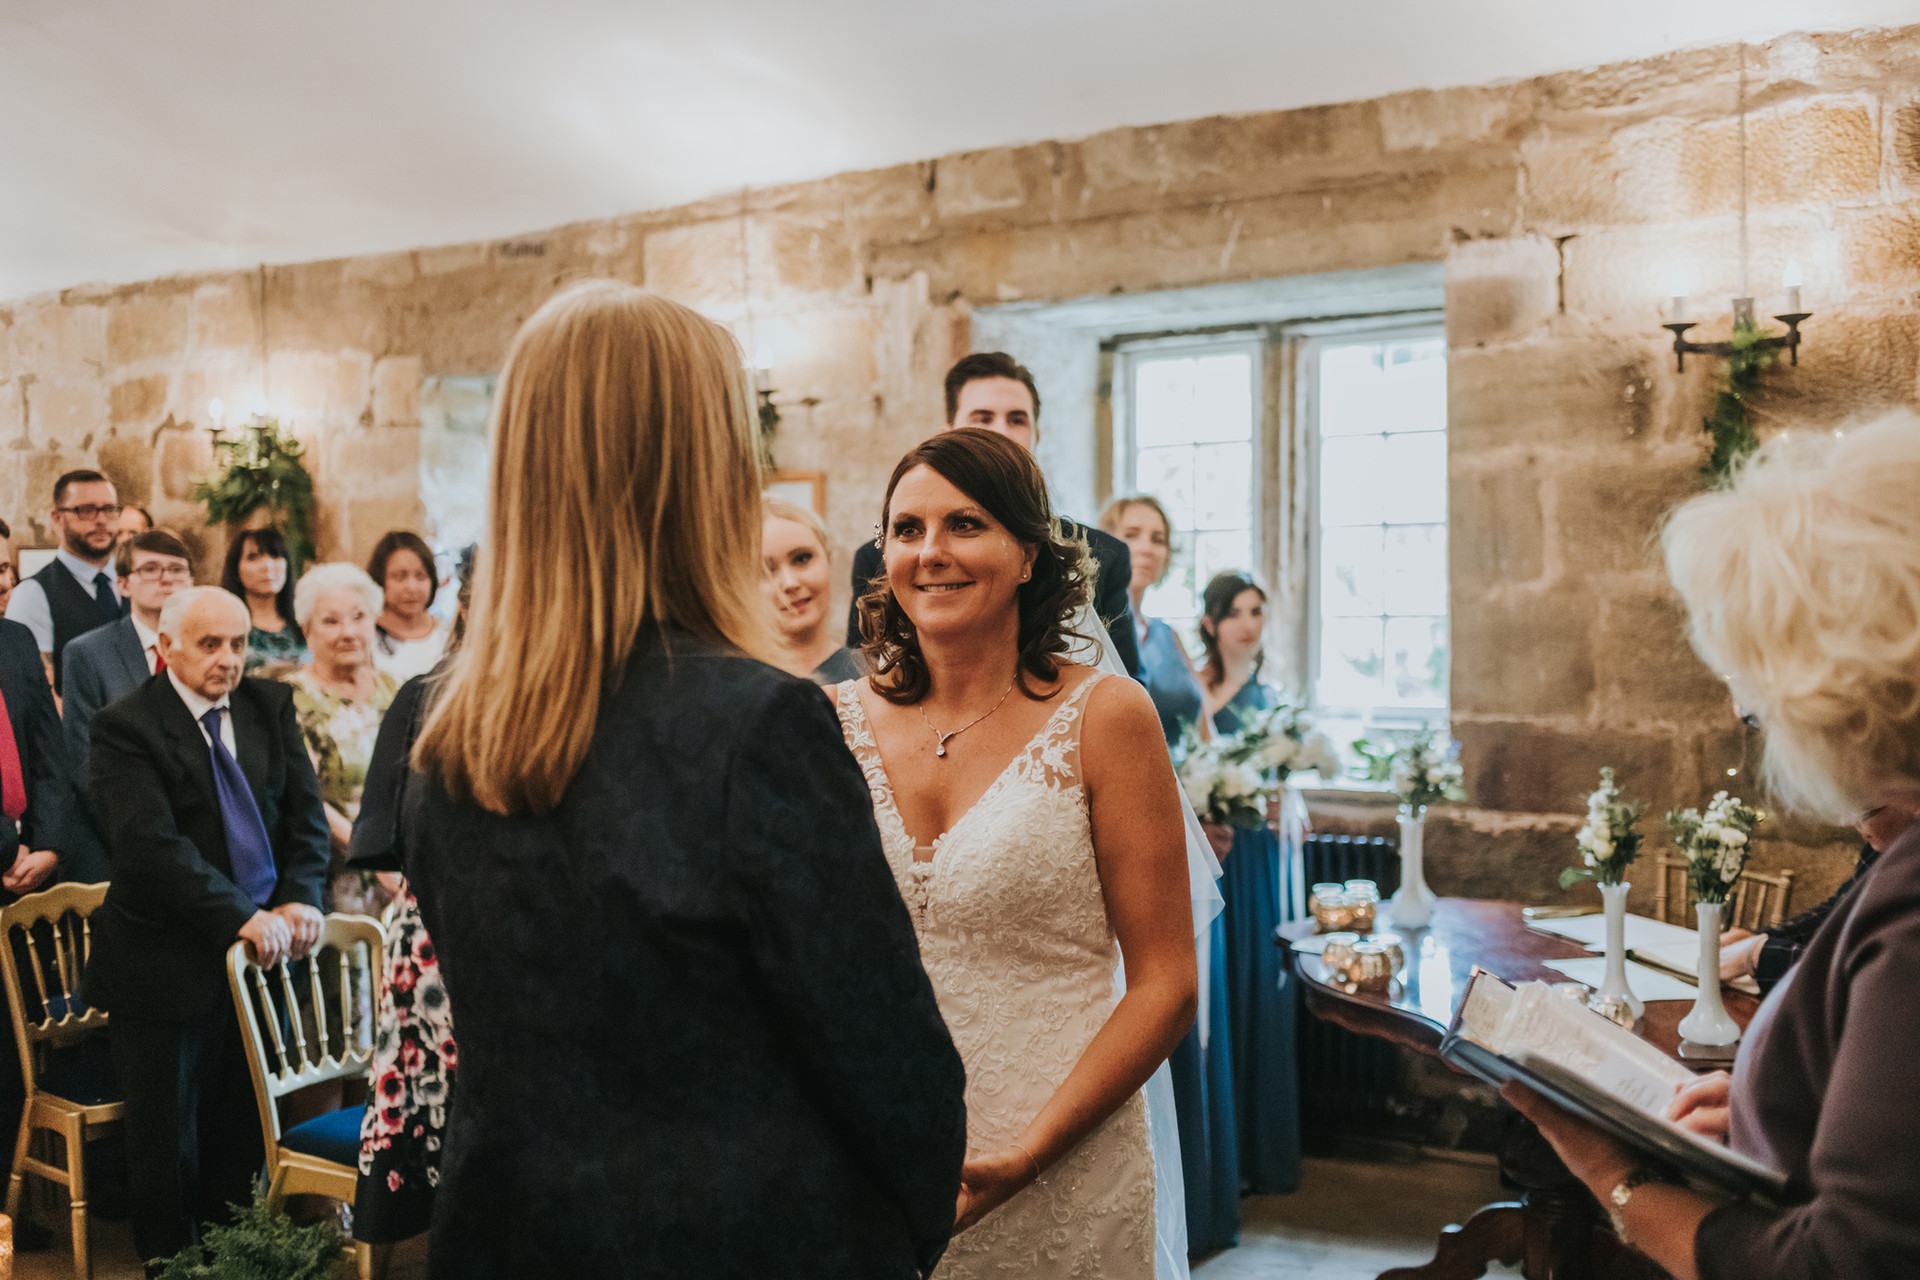 Wedding ceremony taking place at Danby Castle